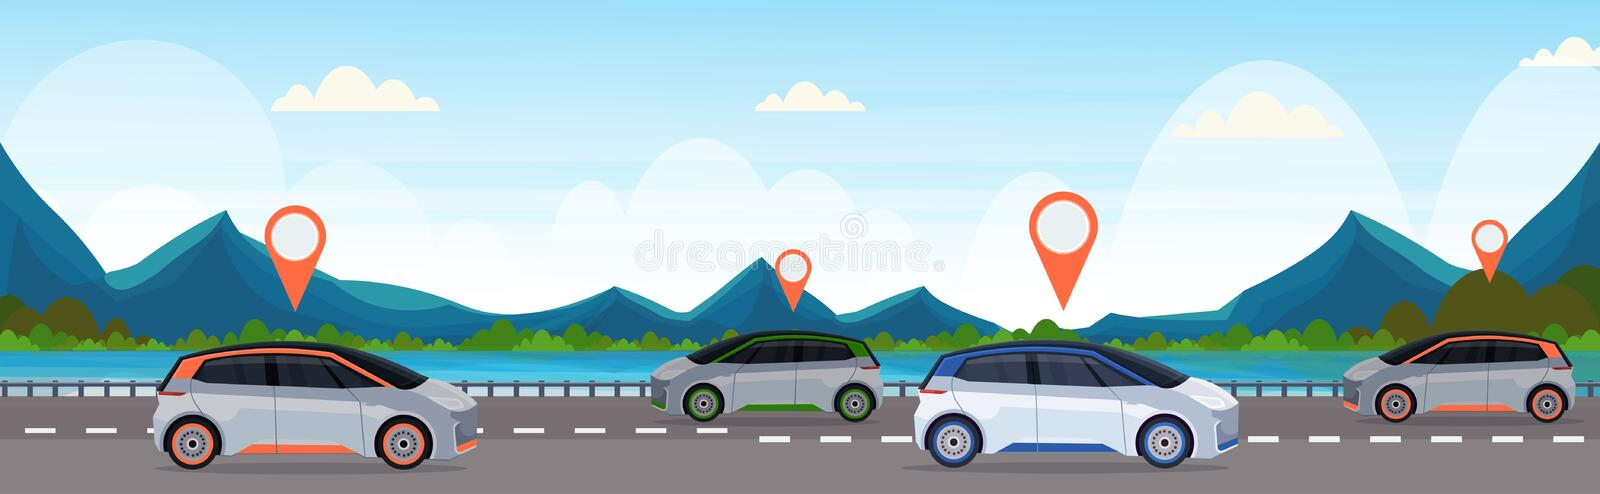 Automobile with location pin on road online ordering taxi car sharing concept mobile transportation carsharing service. Mountains river landscape background stock illustration